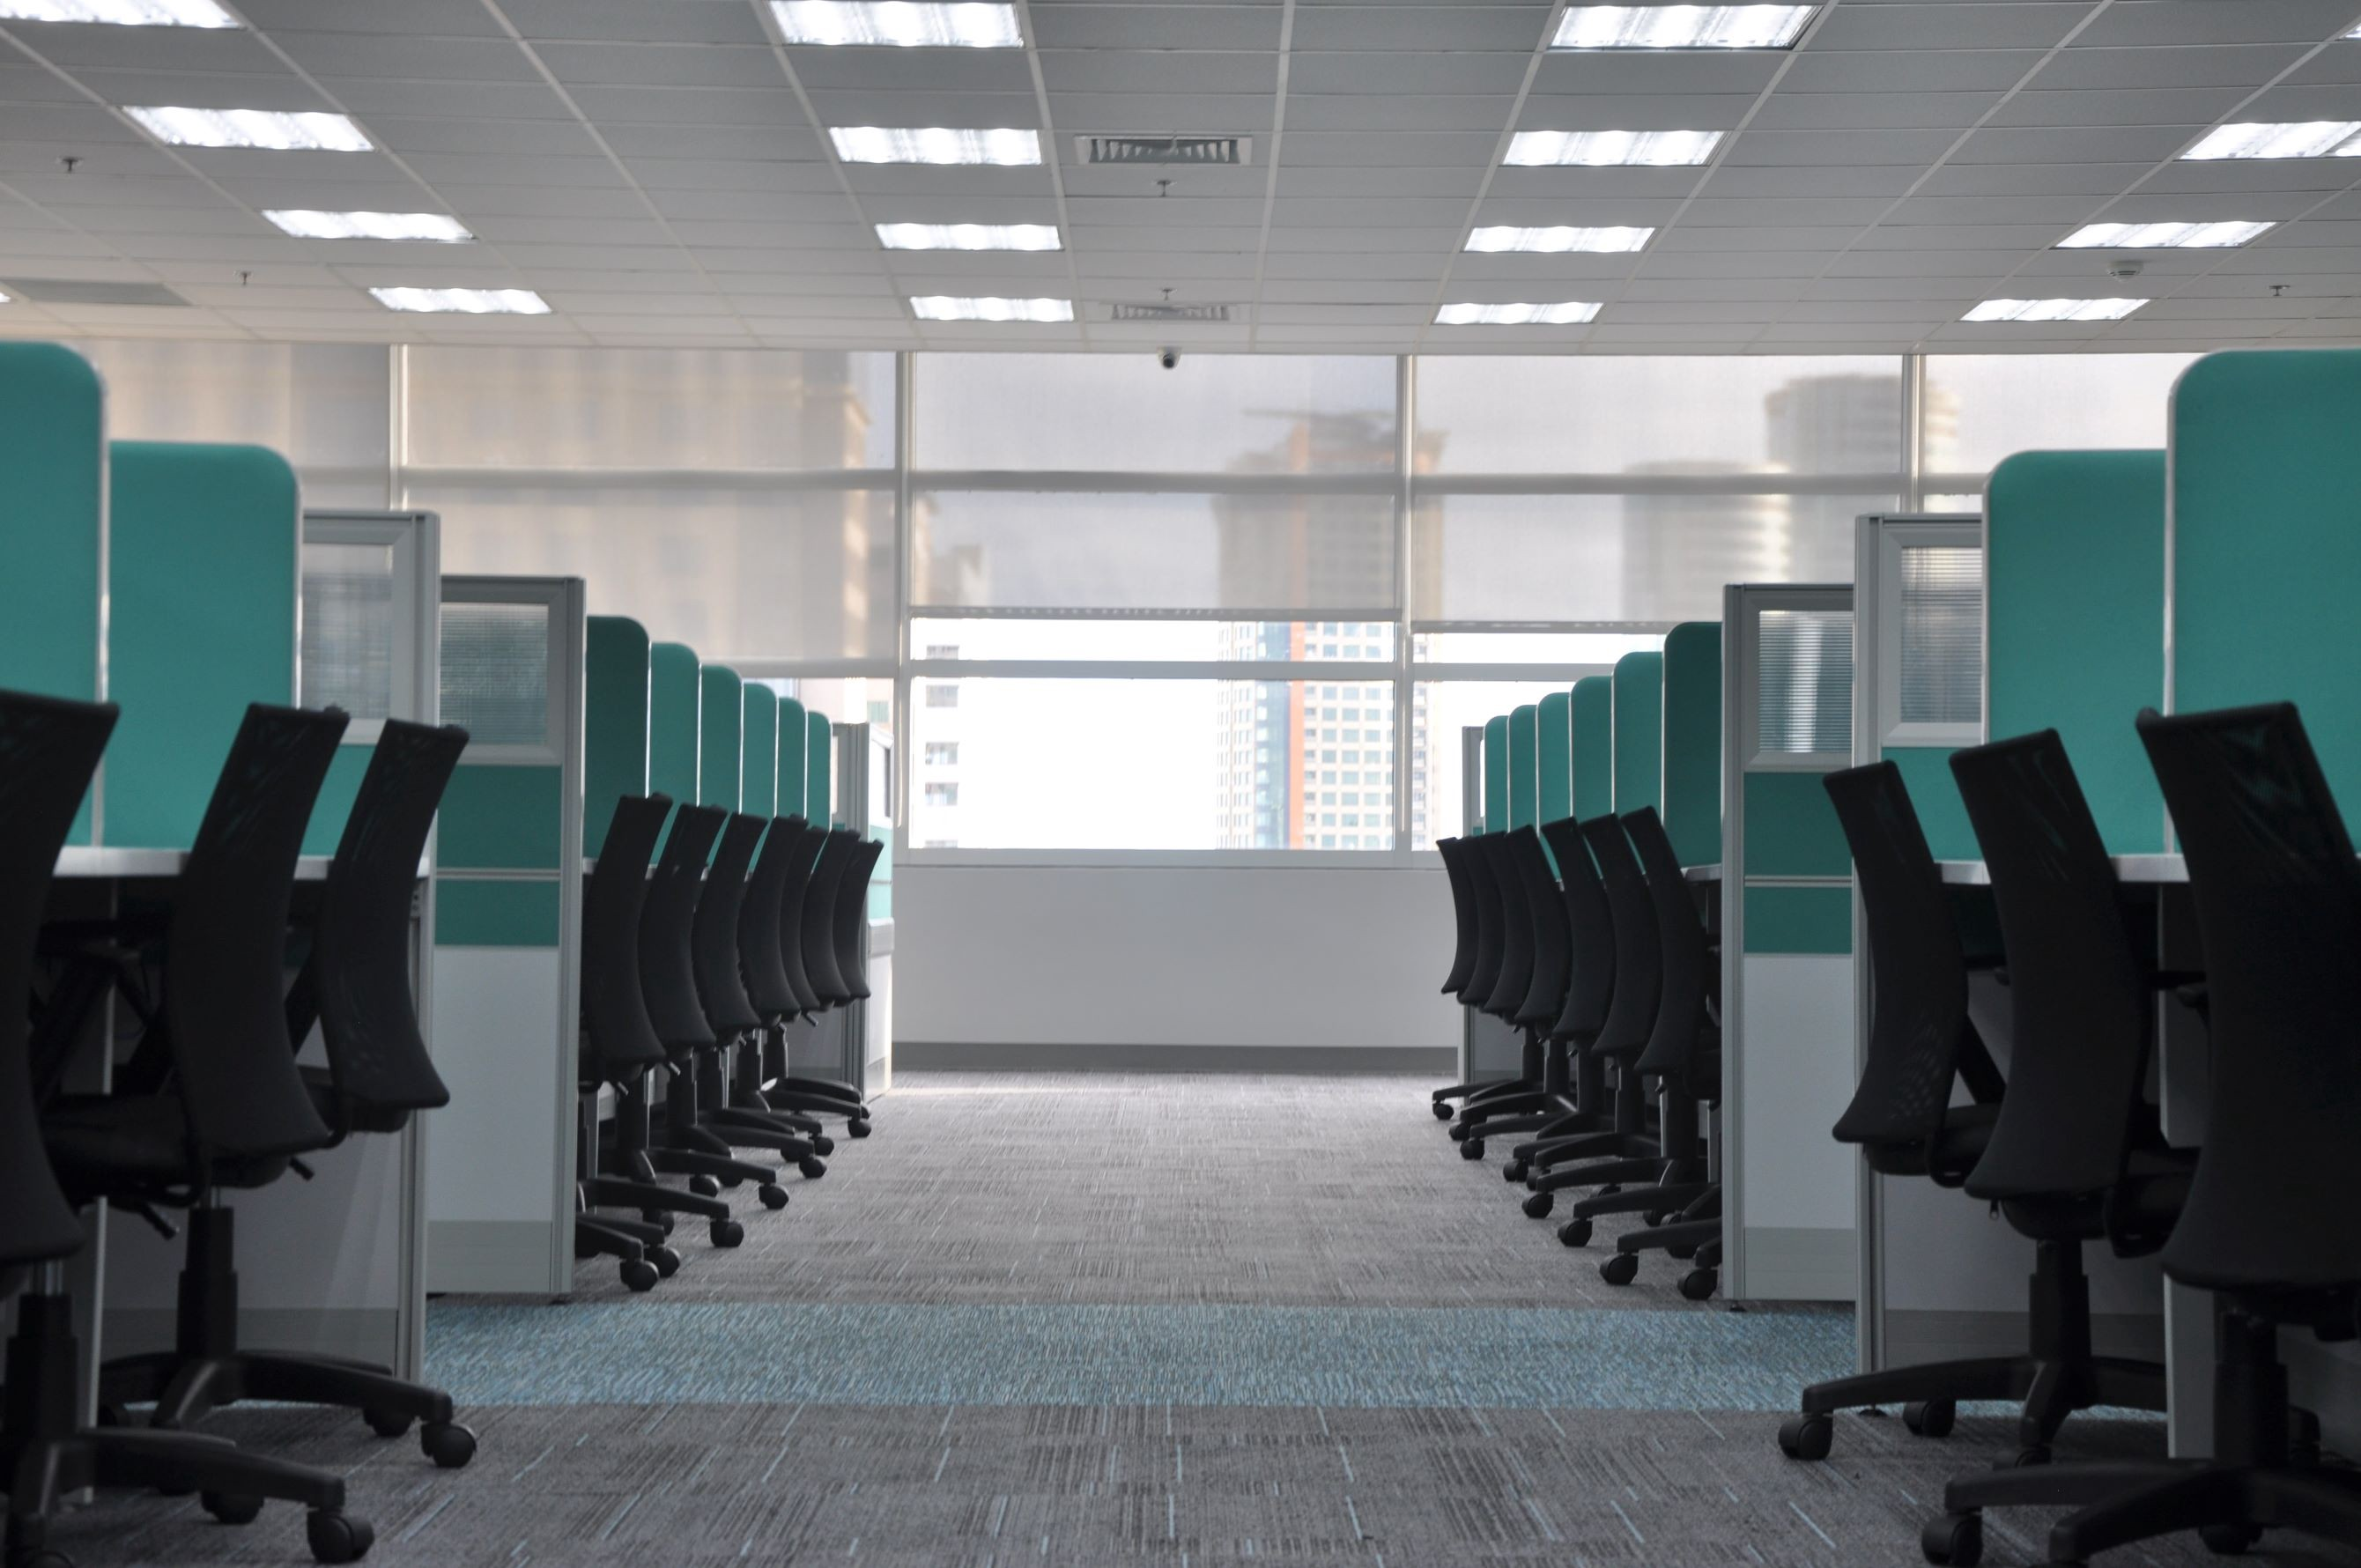 Office floor in high rise with rows of empty cubicles